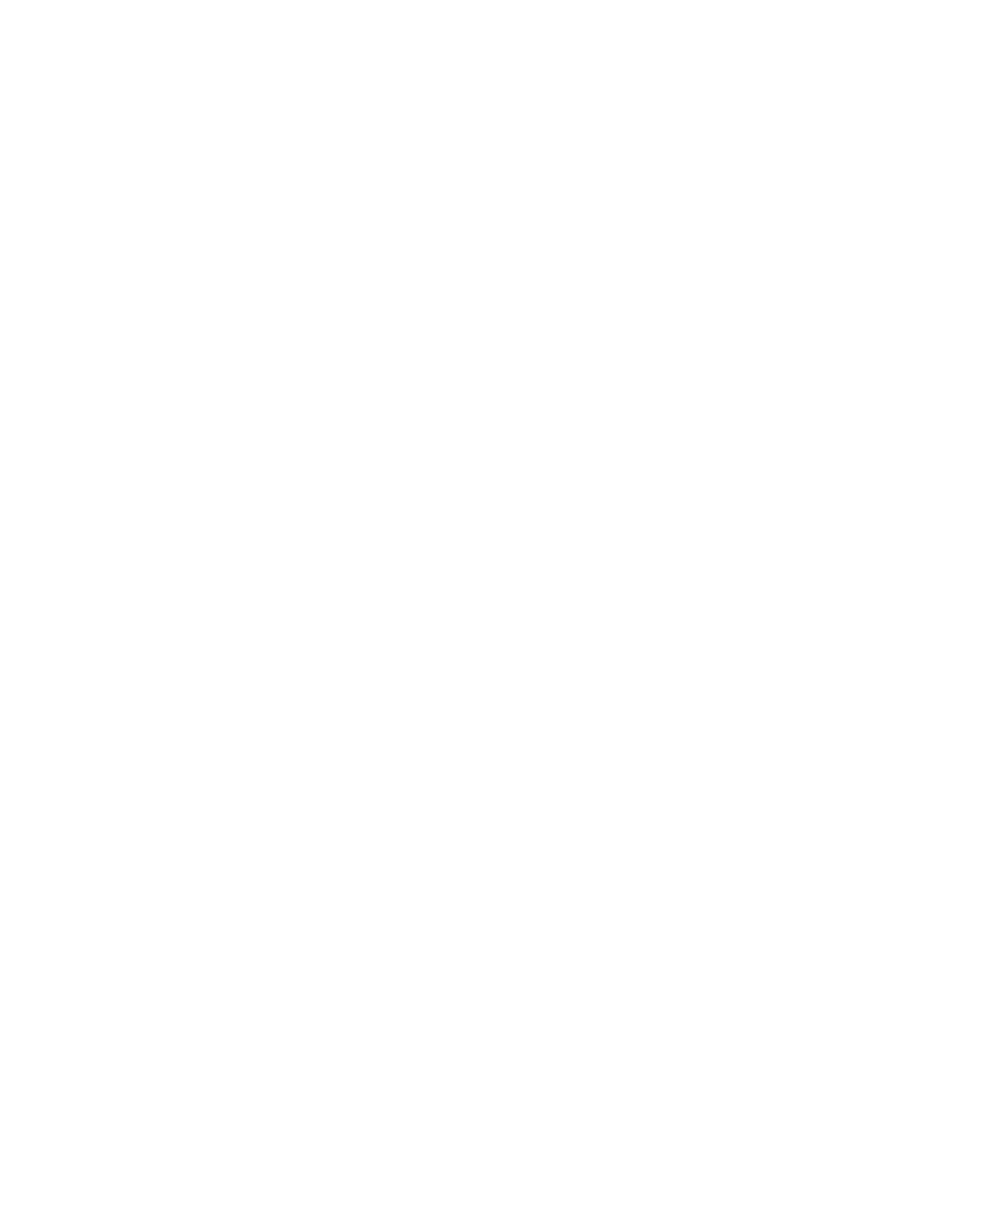 Hotel-A-logo-2.png